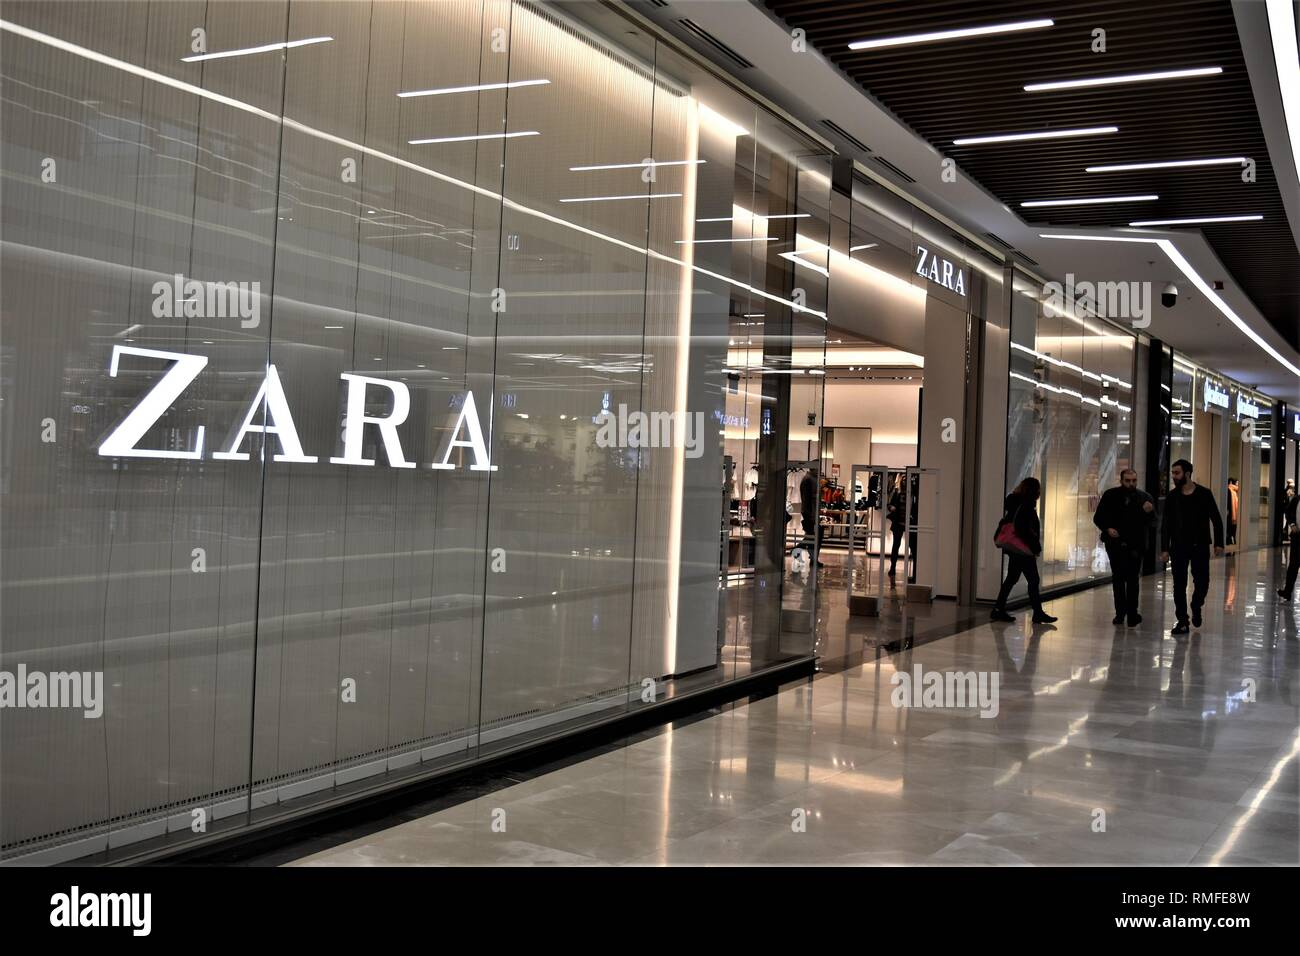 f622a816 Zara Clothing Stock Photos & Zara Clothing Stock Images - Alamy